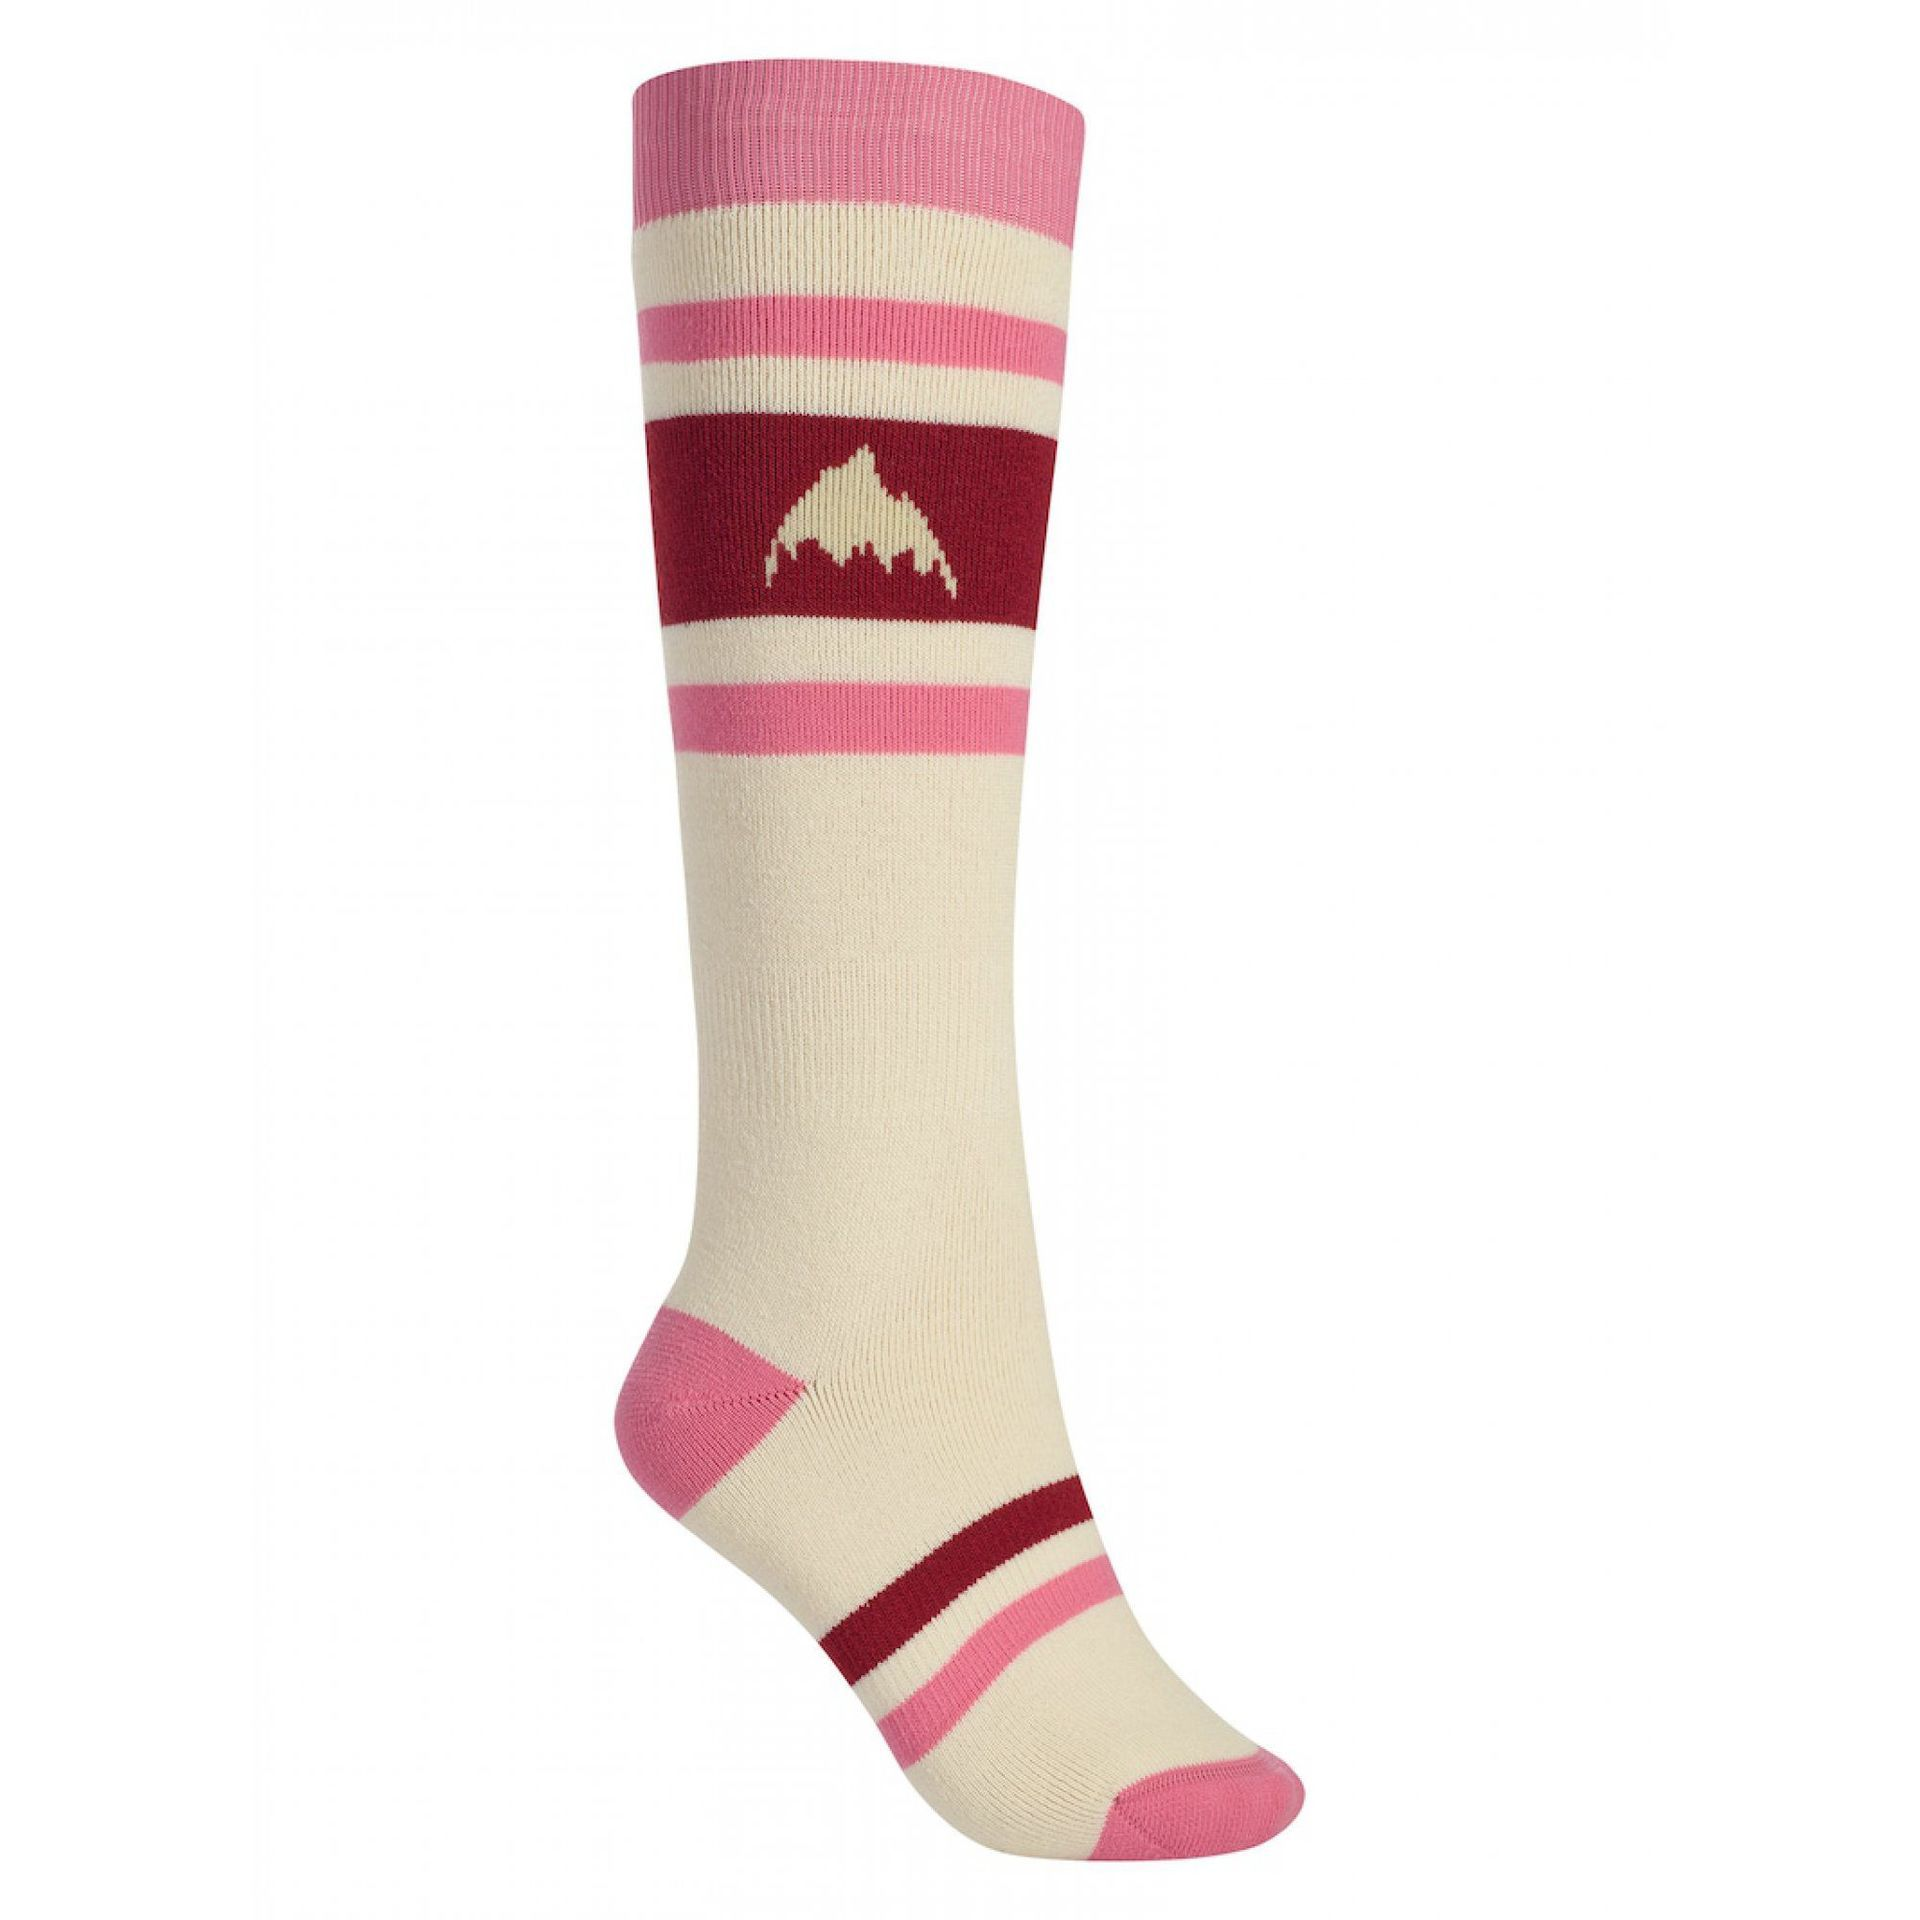 SKARPETY SNOWBOARDOWE BURTON WOMEN'S WEEKEND SOCK TWO‑PACK Canvas